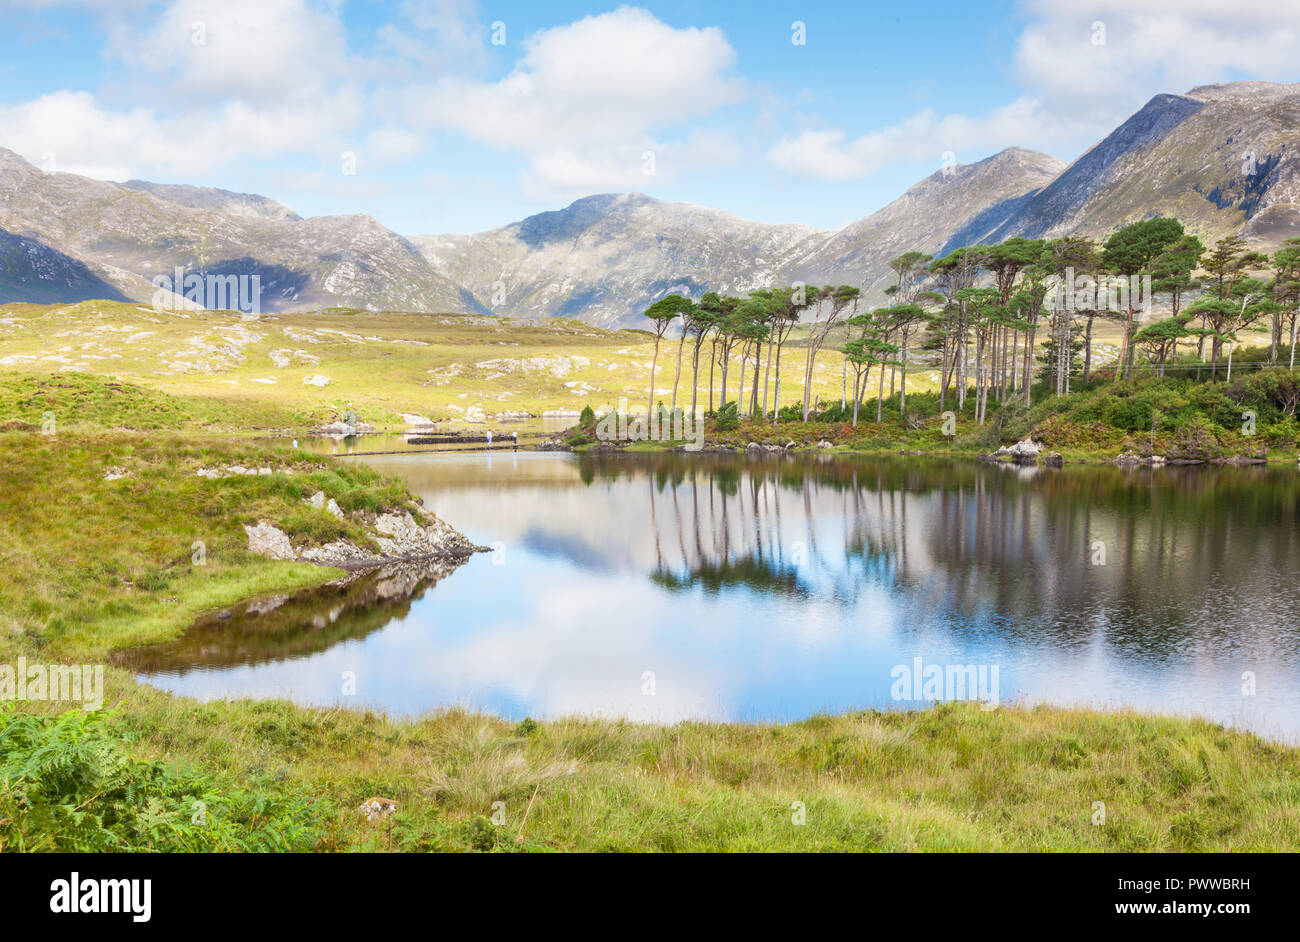 A mountainous landscape reflected in Derryclare Lough, in the Inagh Valley, County Galway, Ireland. Stock Photo